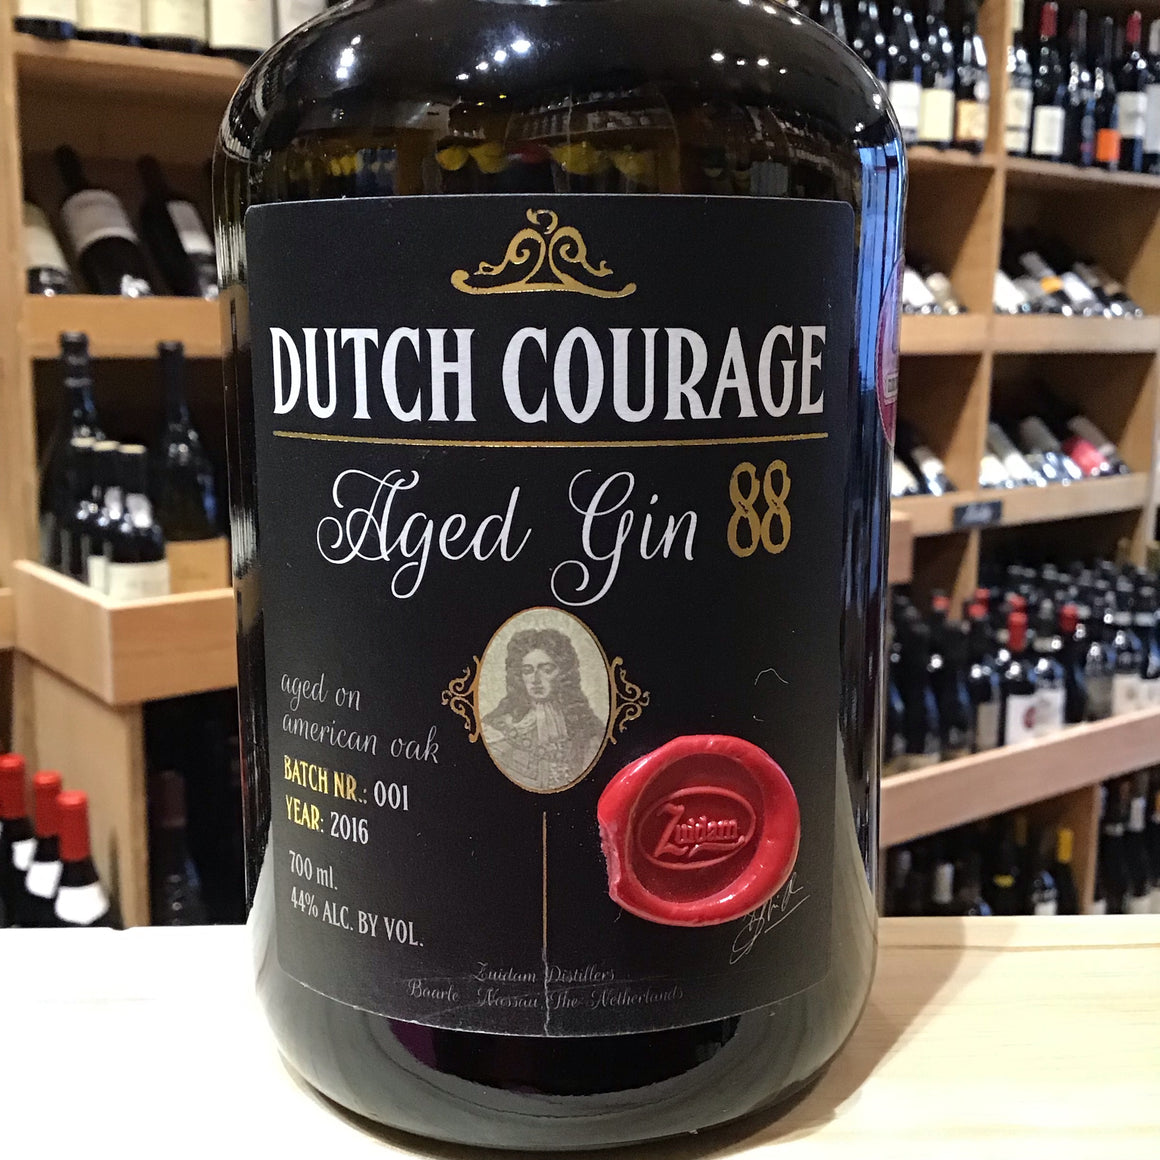 Zuidam Dutch Courage Aged Gin 88 - Butlers Wine Cellar Brighton